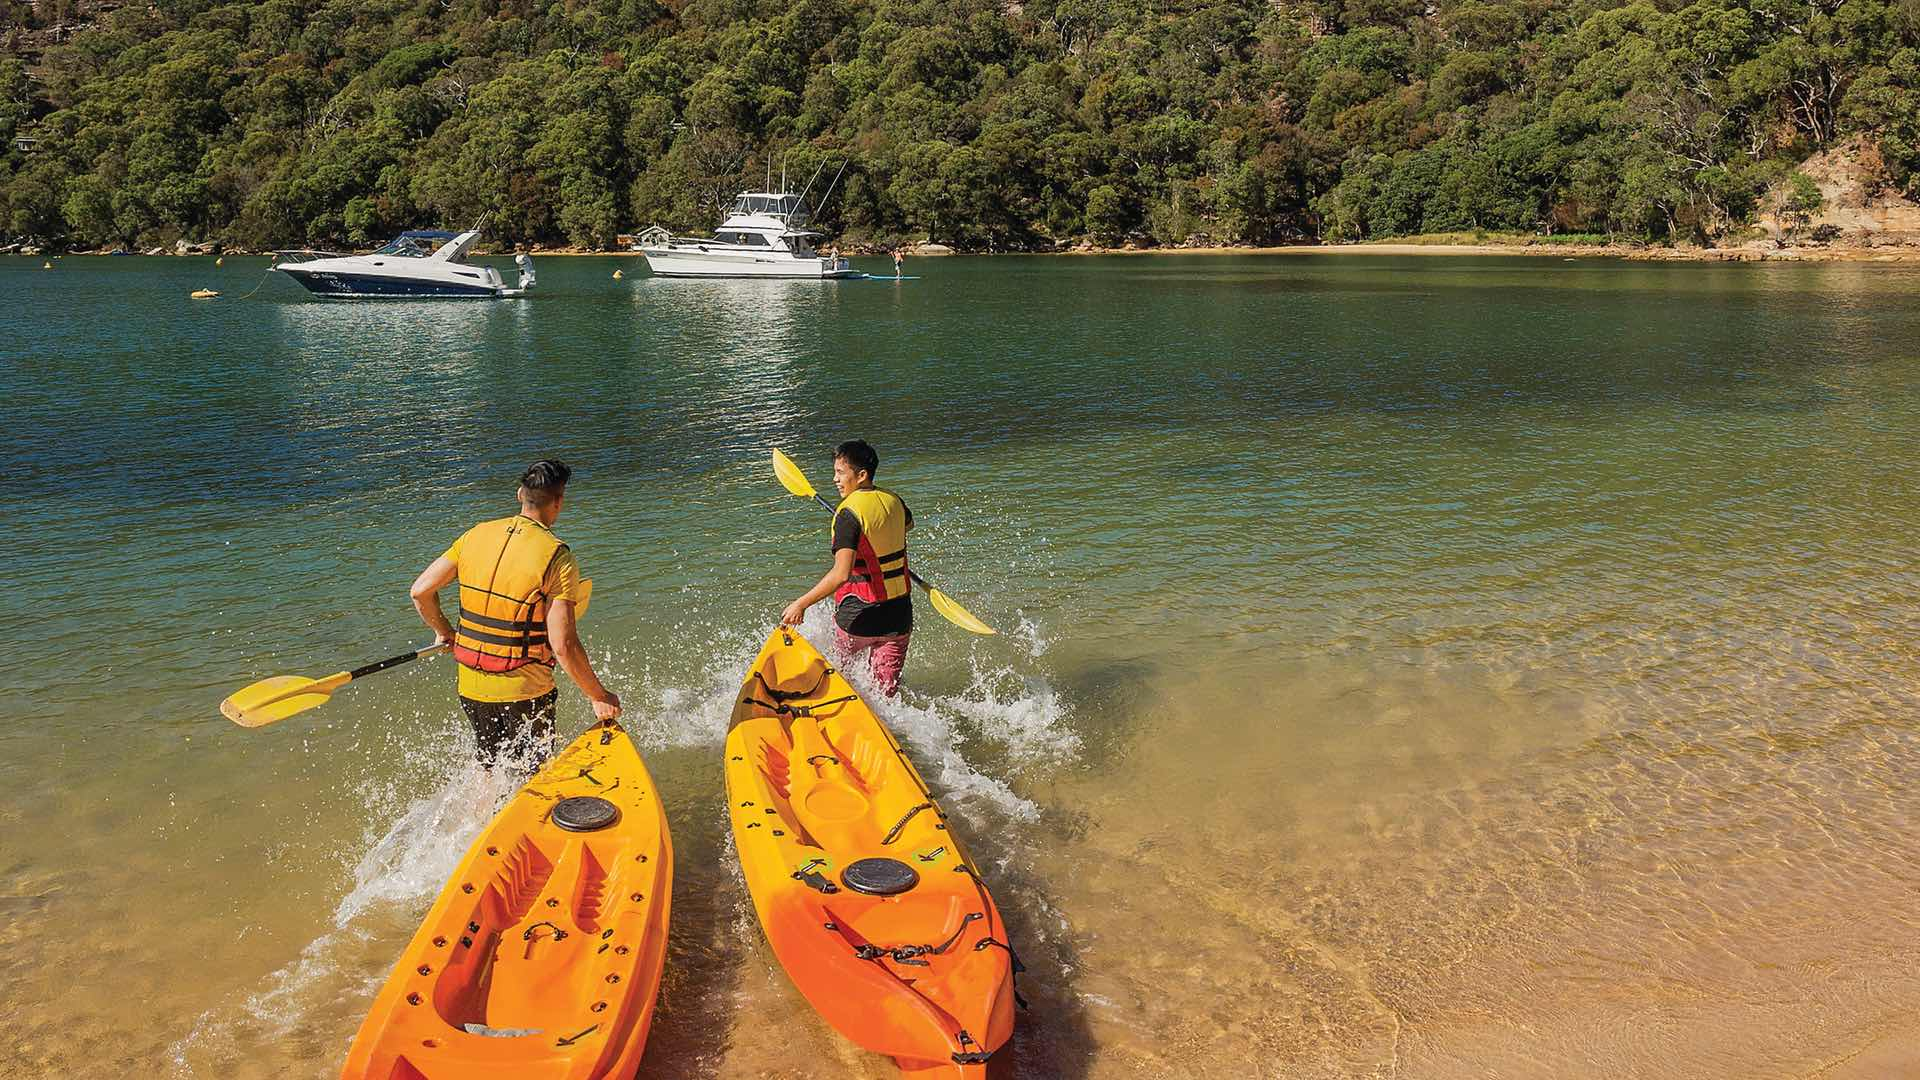 Home Water Filter >> The Ten Best Kayaking Spots in Sydney - Concrete Playground | Concrete Playground Sydney